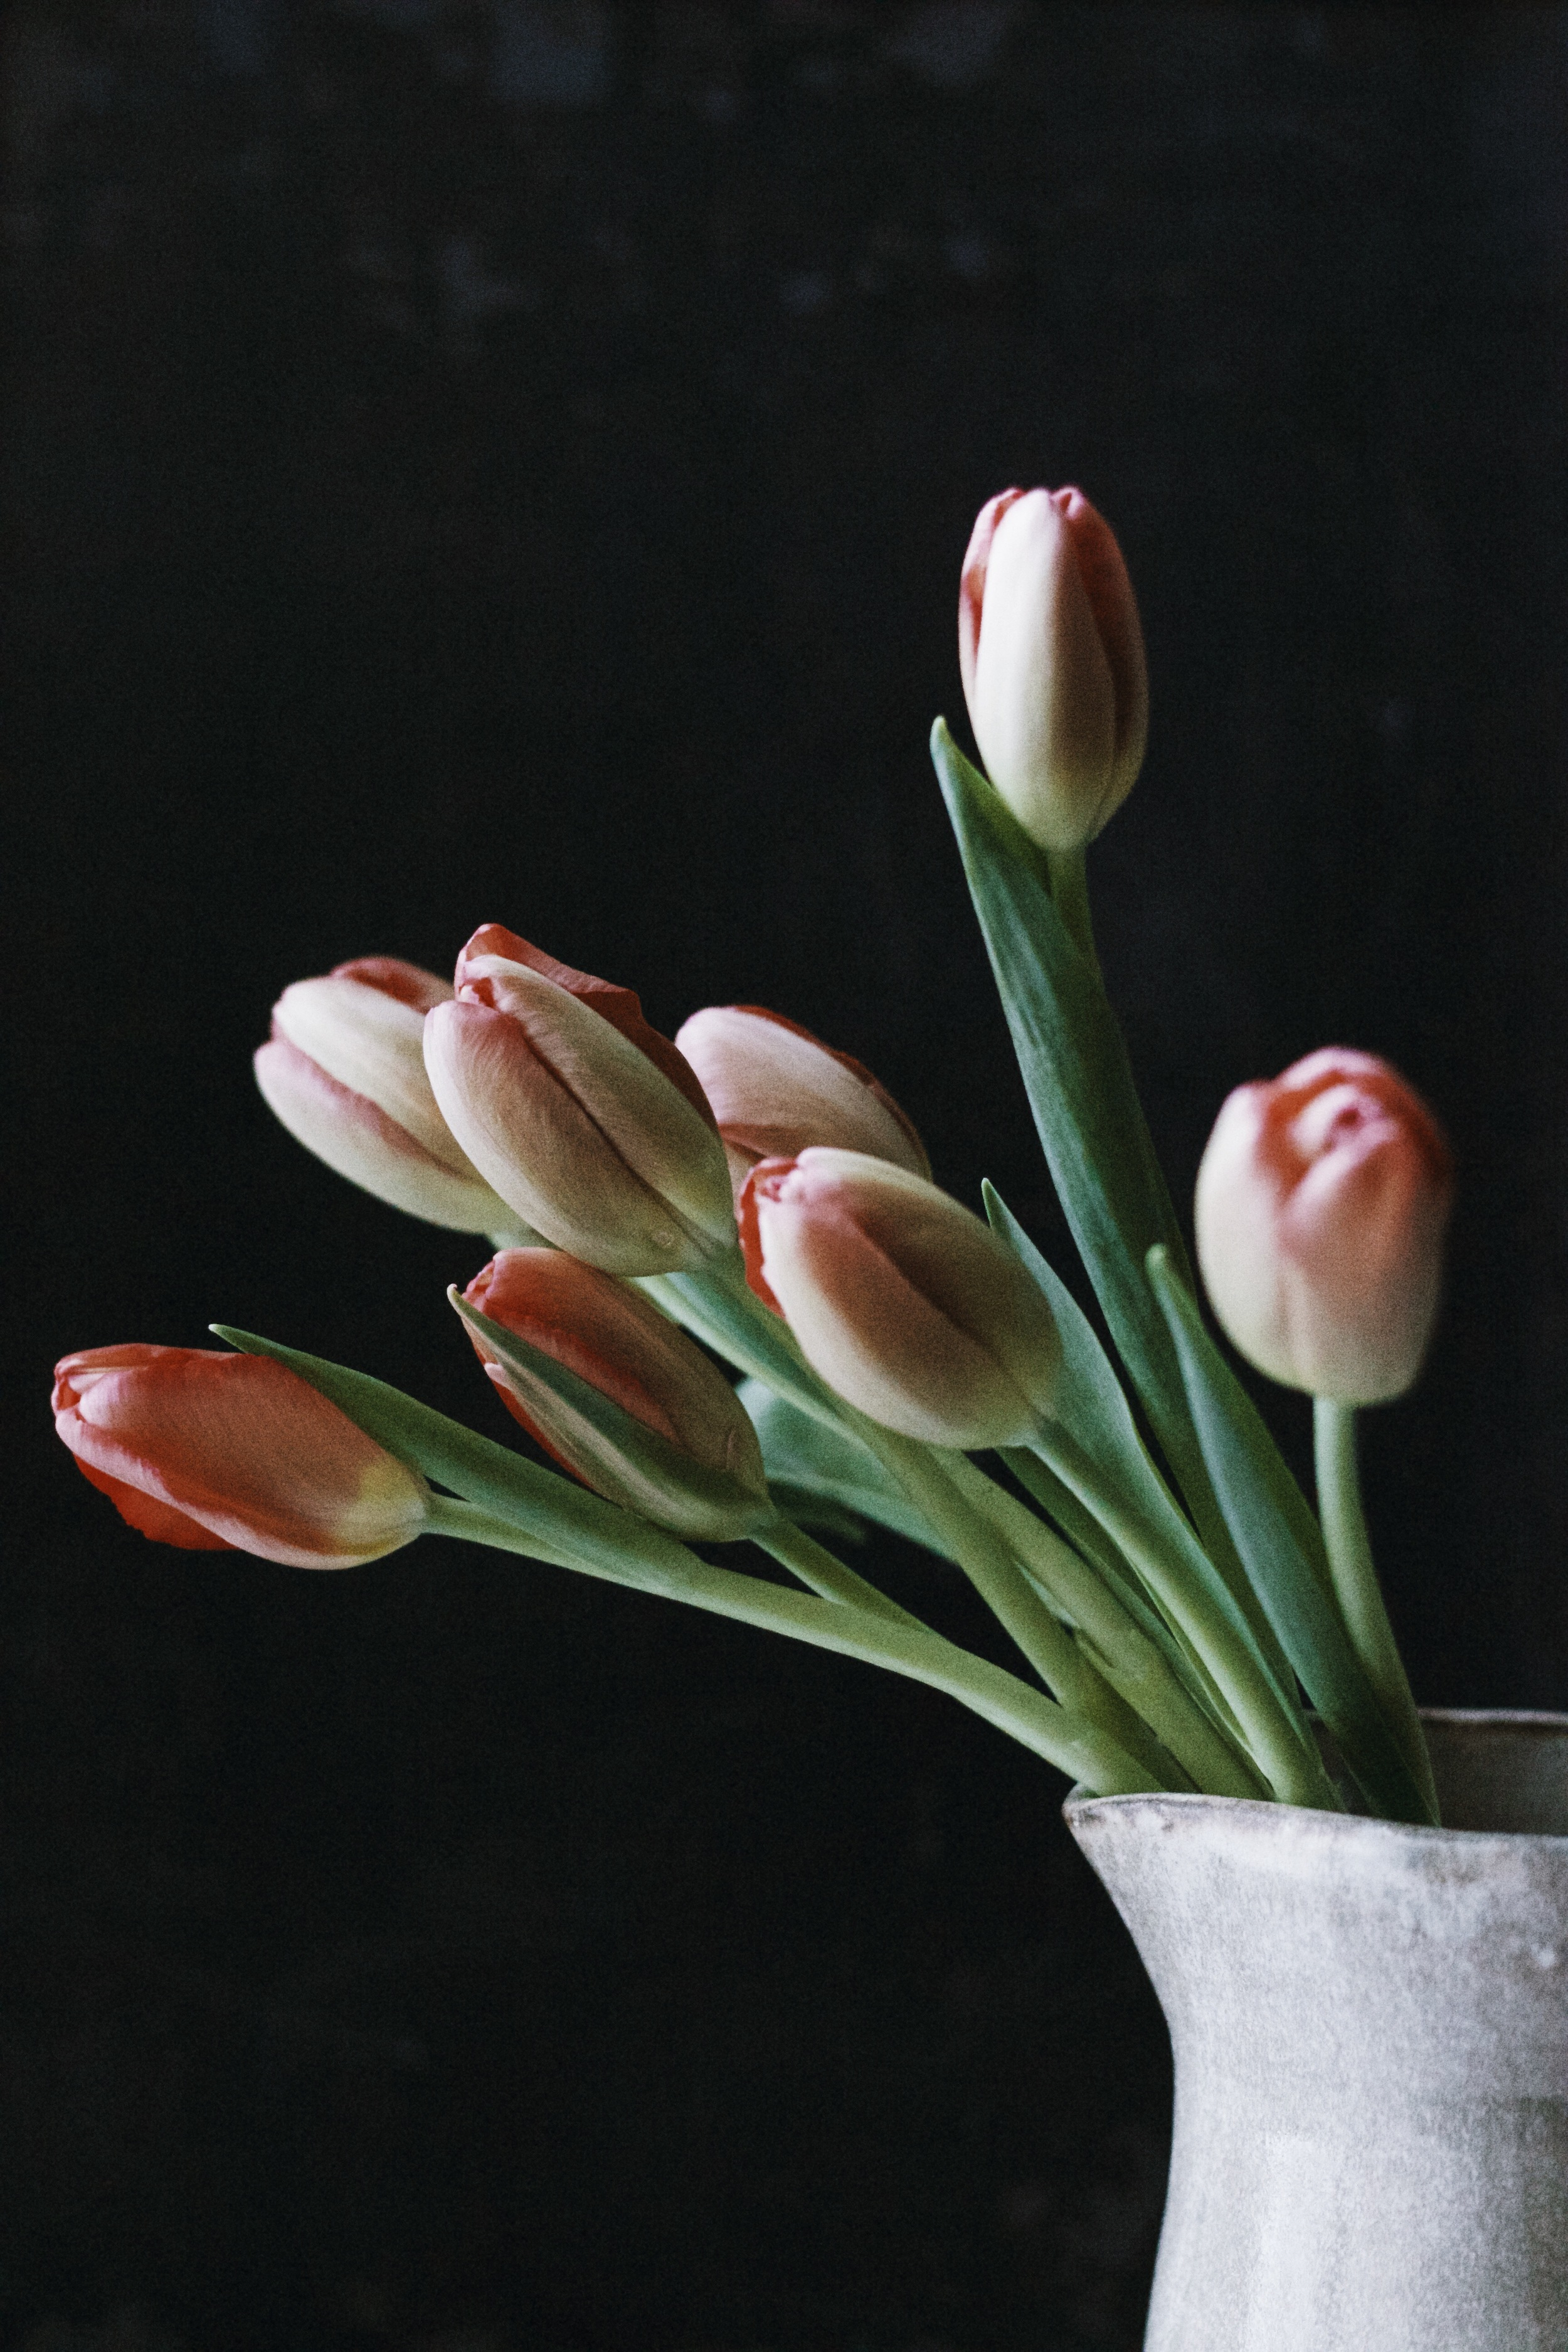 More tulipsbecause they are breathtaking.